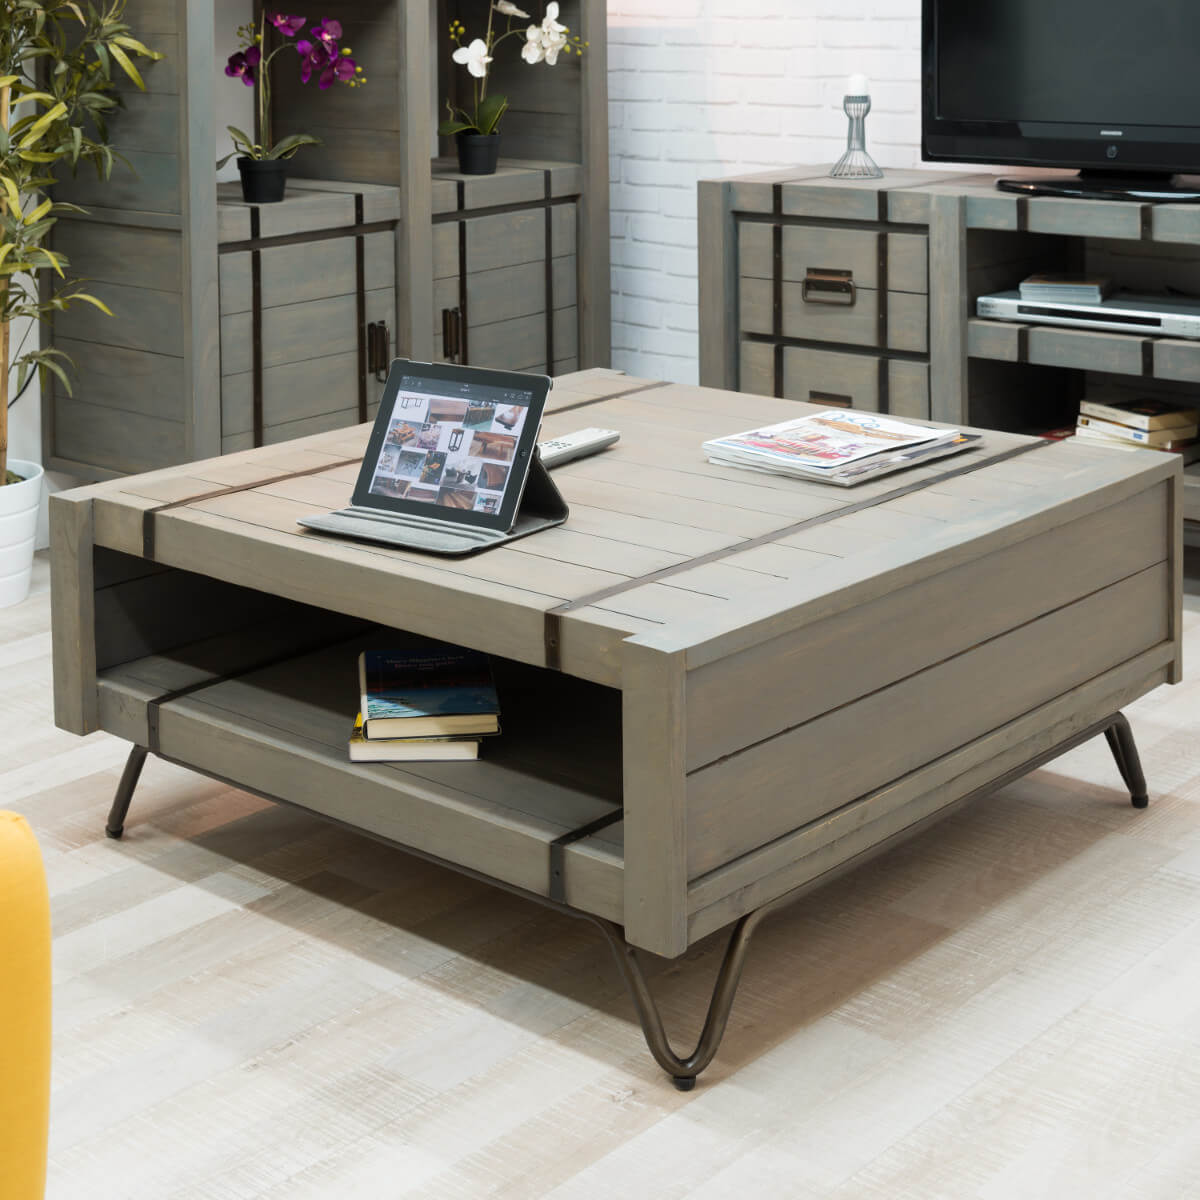 Table Basse Industrielle Meuble En Bois Rectangle Grise Mindi